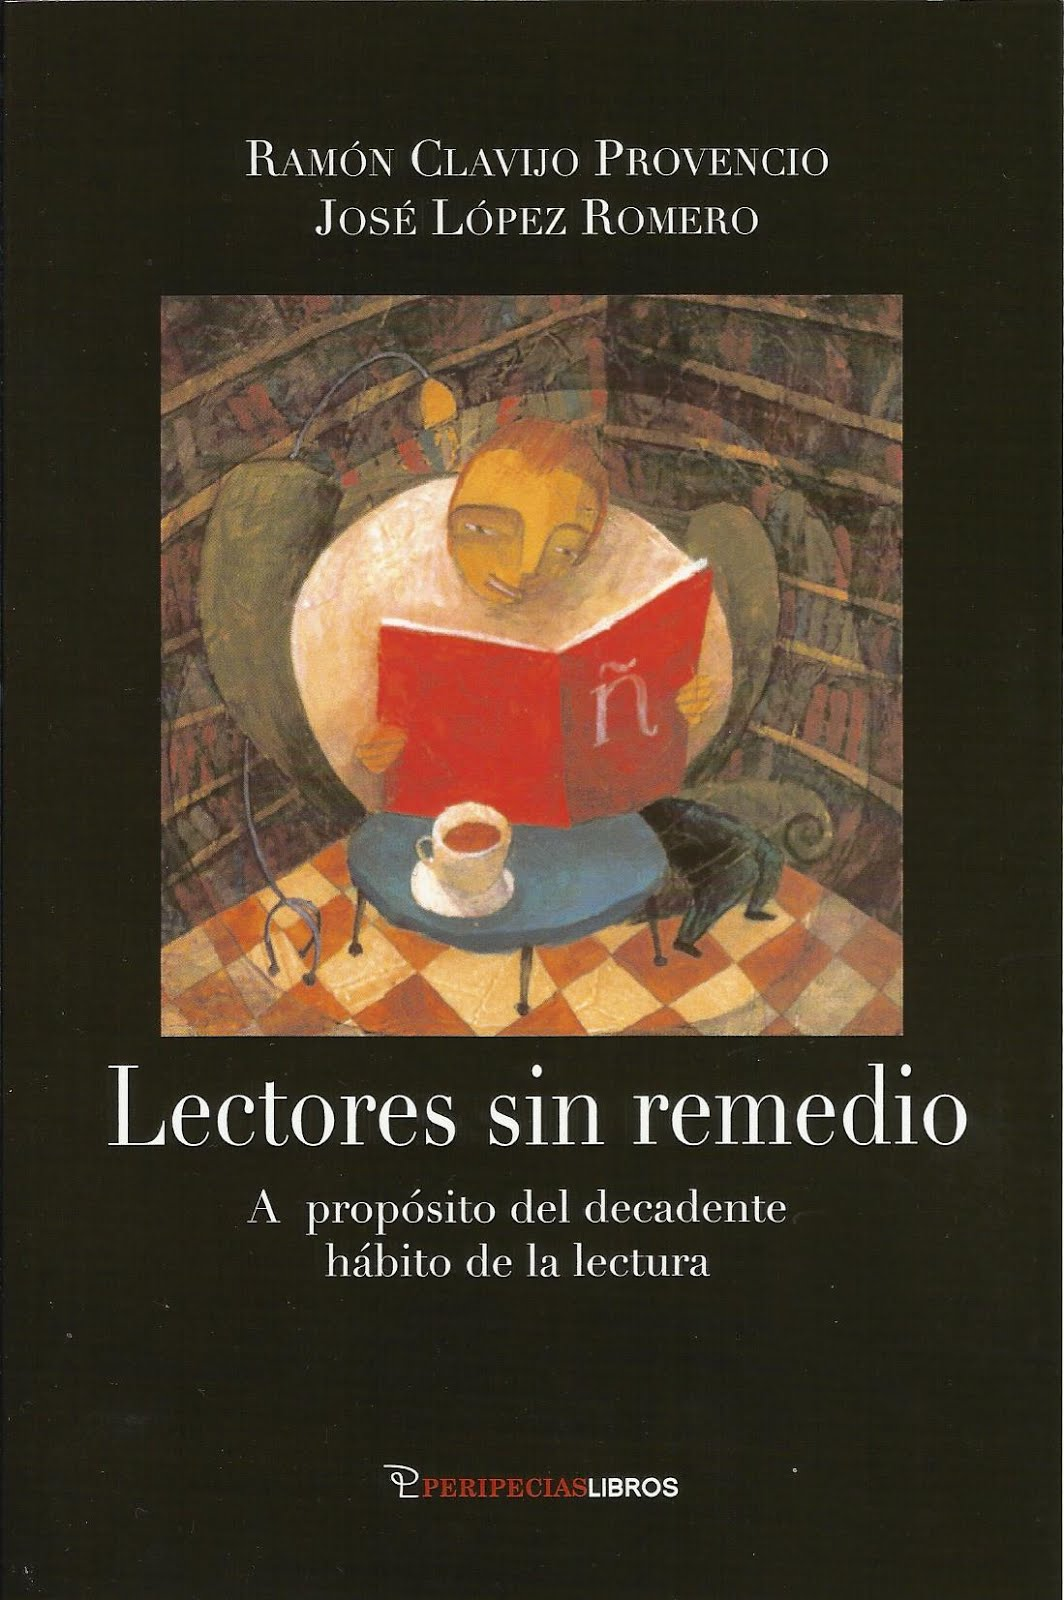 """Lectores sin remedio"" vol. 2."